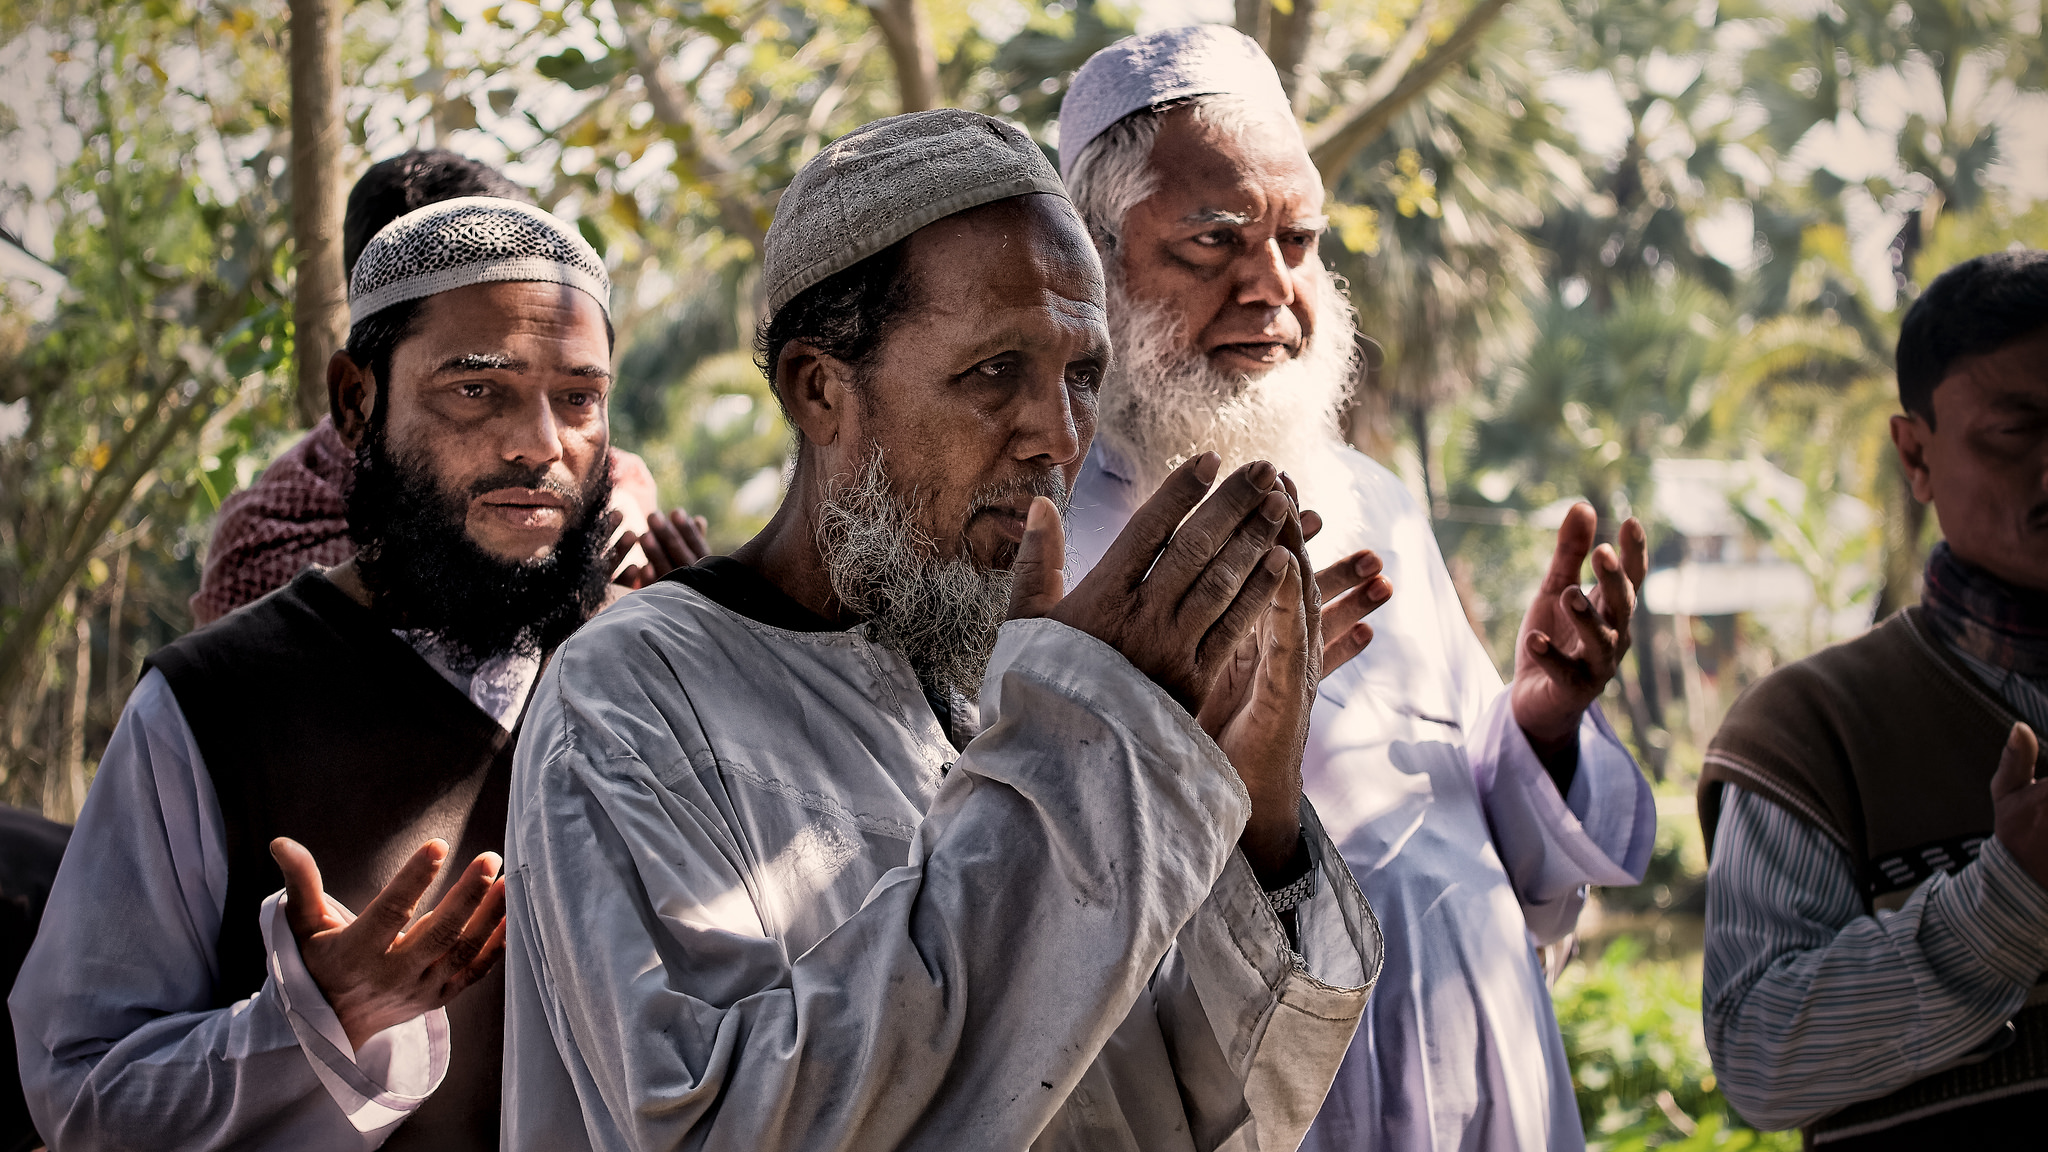 Many people in Muslim communities of South Asia depend totally on religious leaders to interpret the Quran for them since they cannot understand Arabic - Photo courtesy of   Armand Rajnoch .